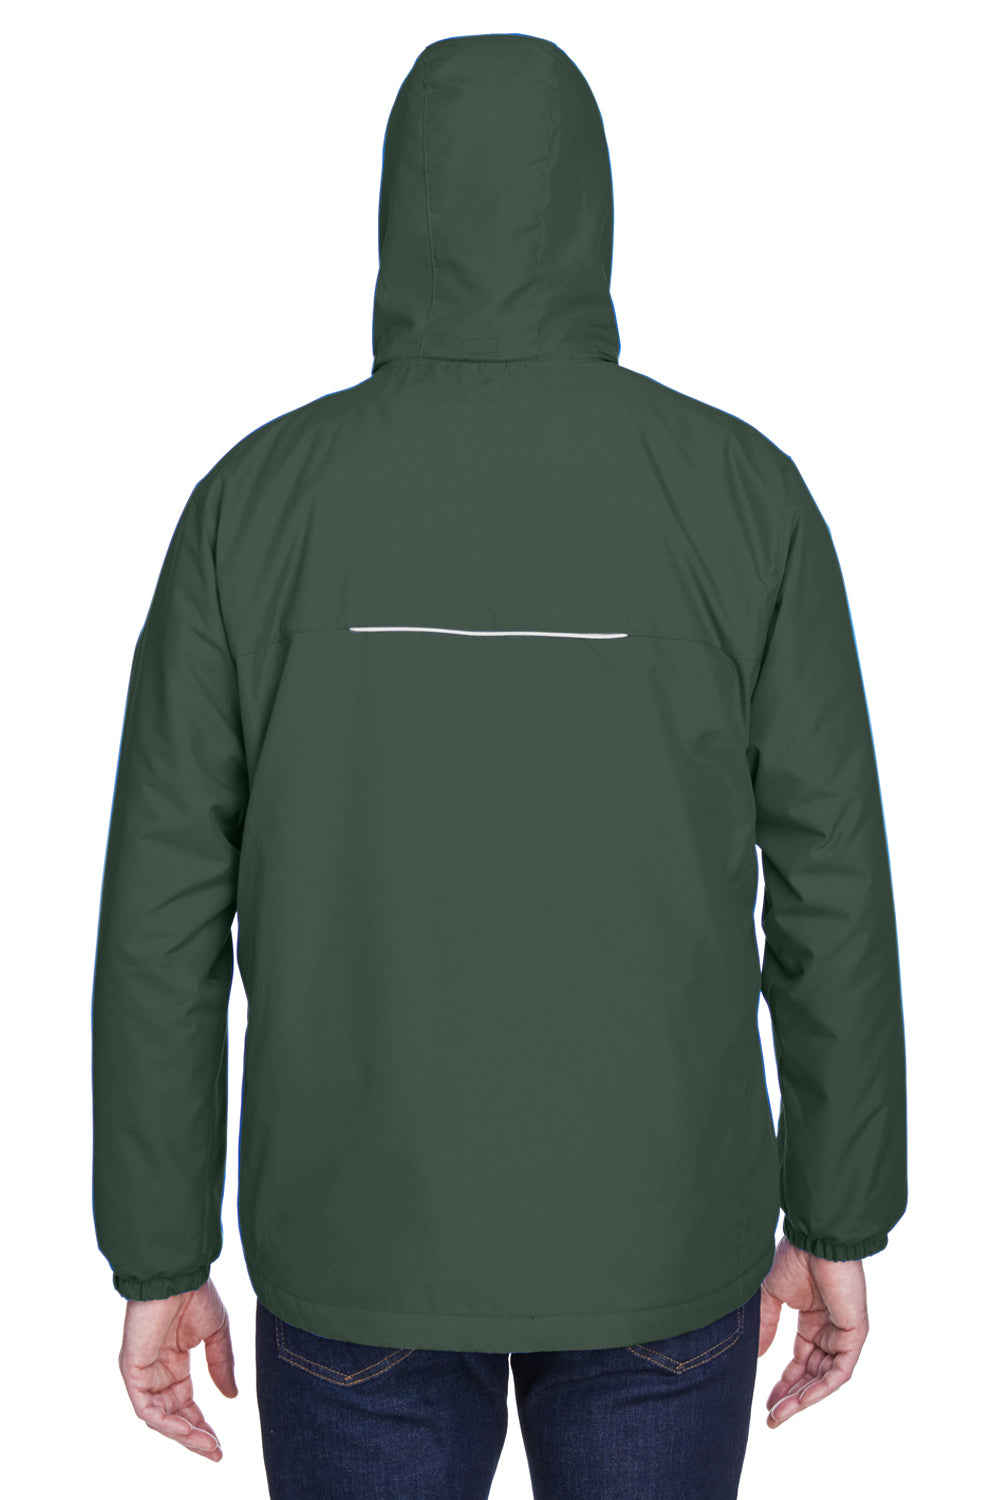 Core 365 88189 Mens Brisk Full Zip Hooded Jacket Forest Green Back